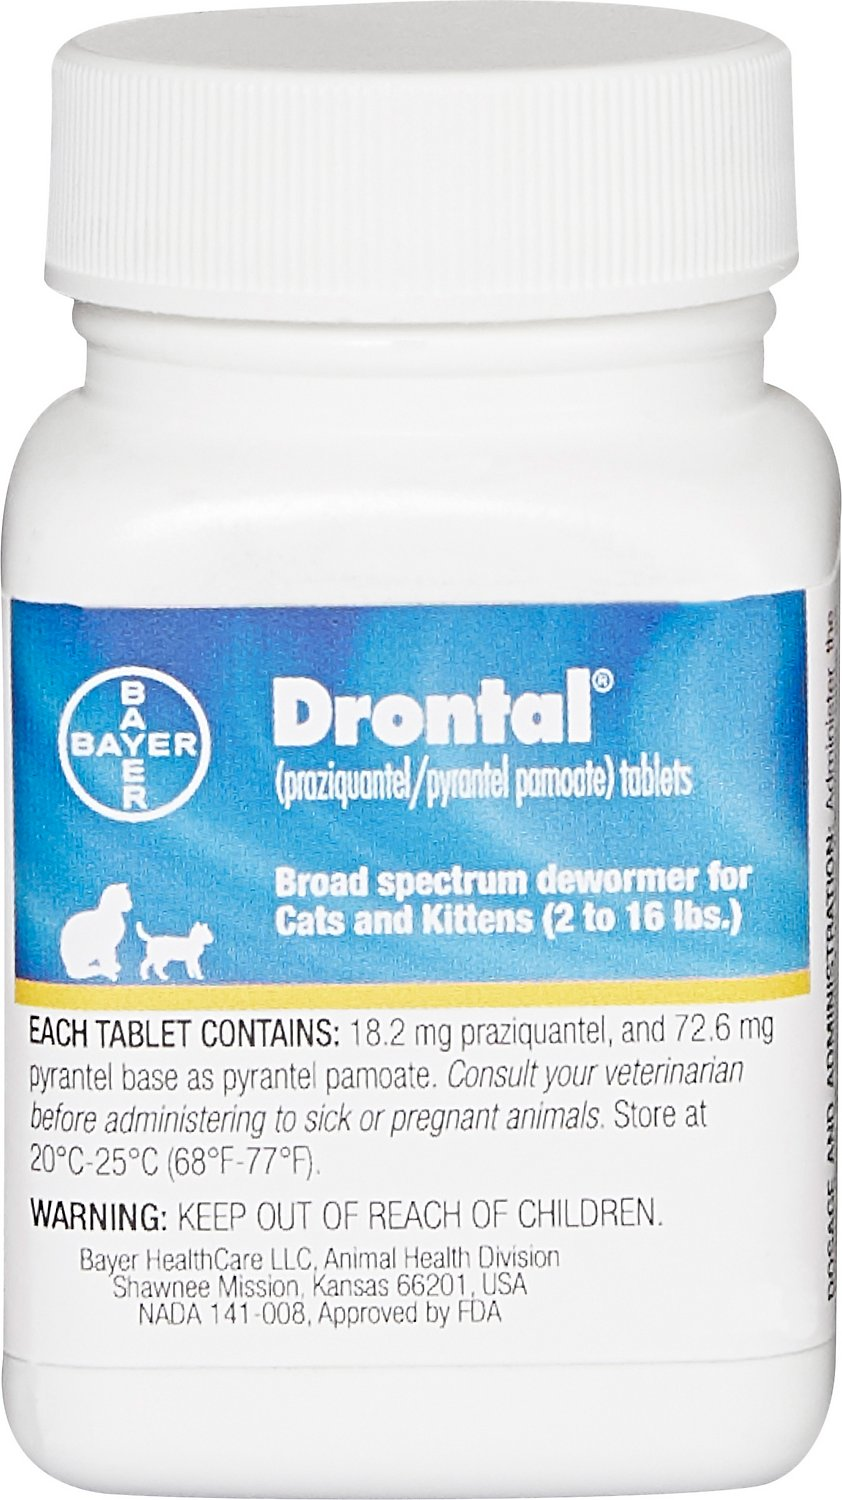 Drontal Tablets for Cats, 2-16 lbs, 1 tablet